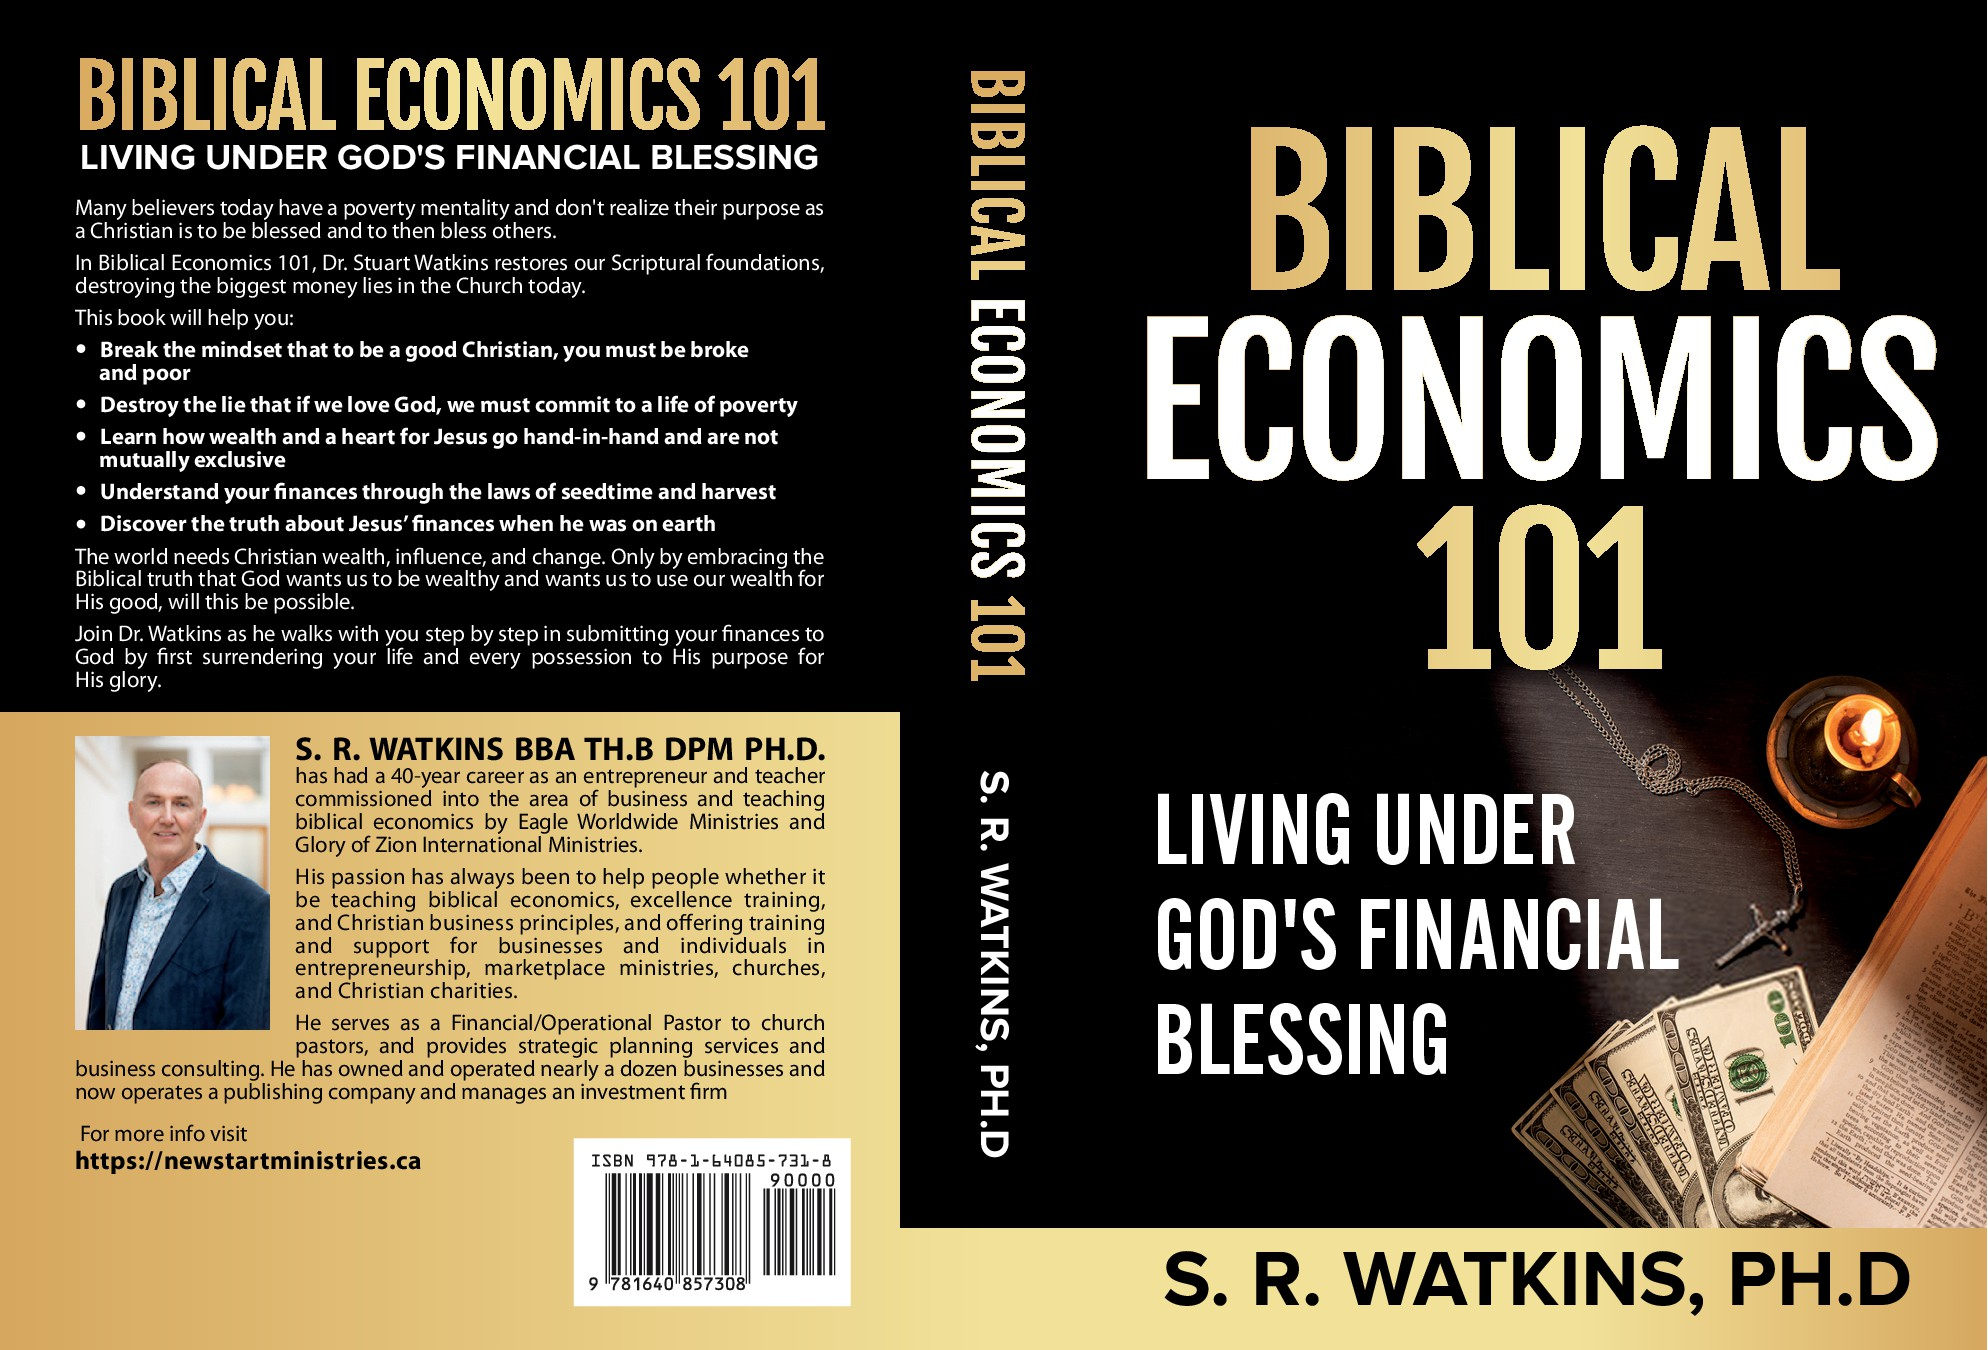 """We need a powerful cover for Biblical Economics 101 book that """"pops"""""""